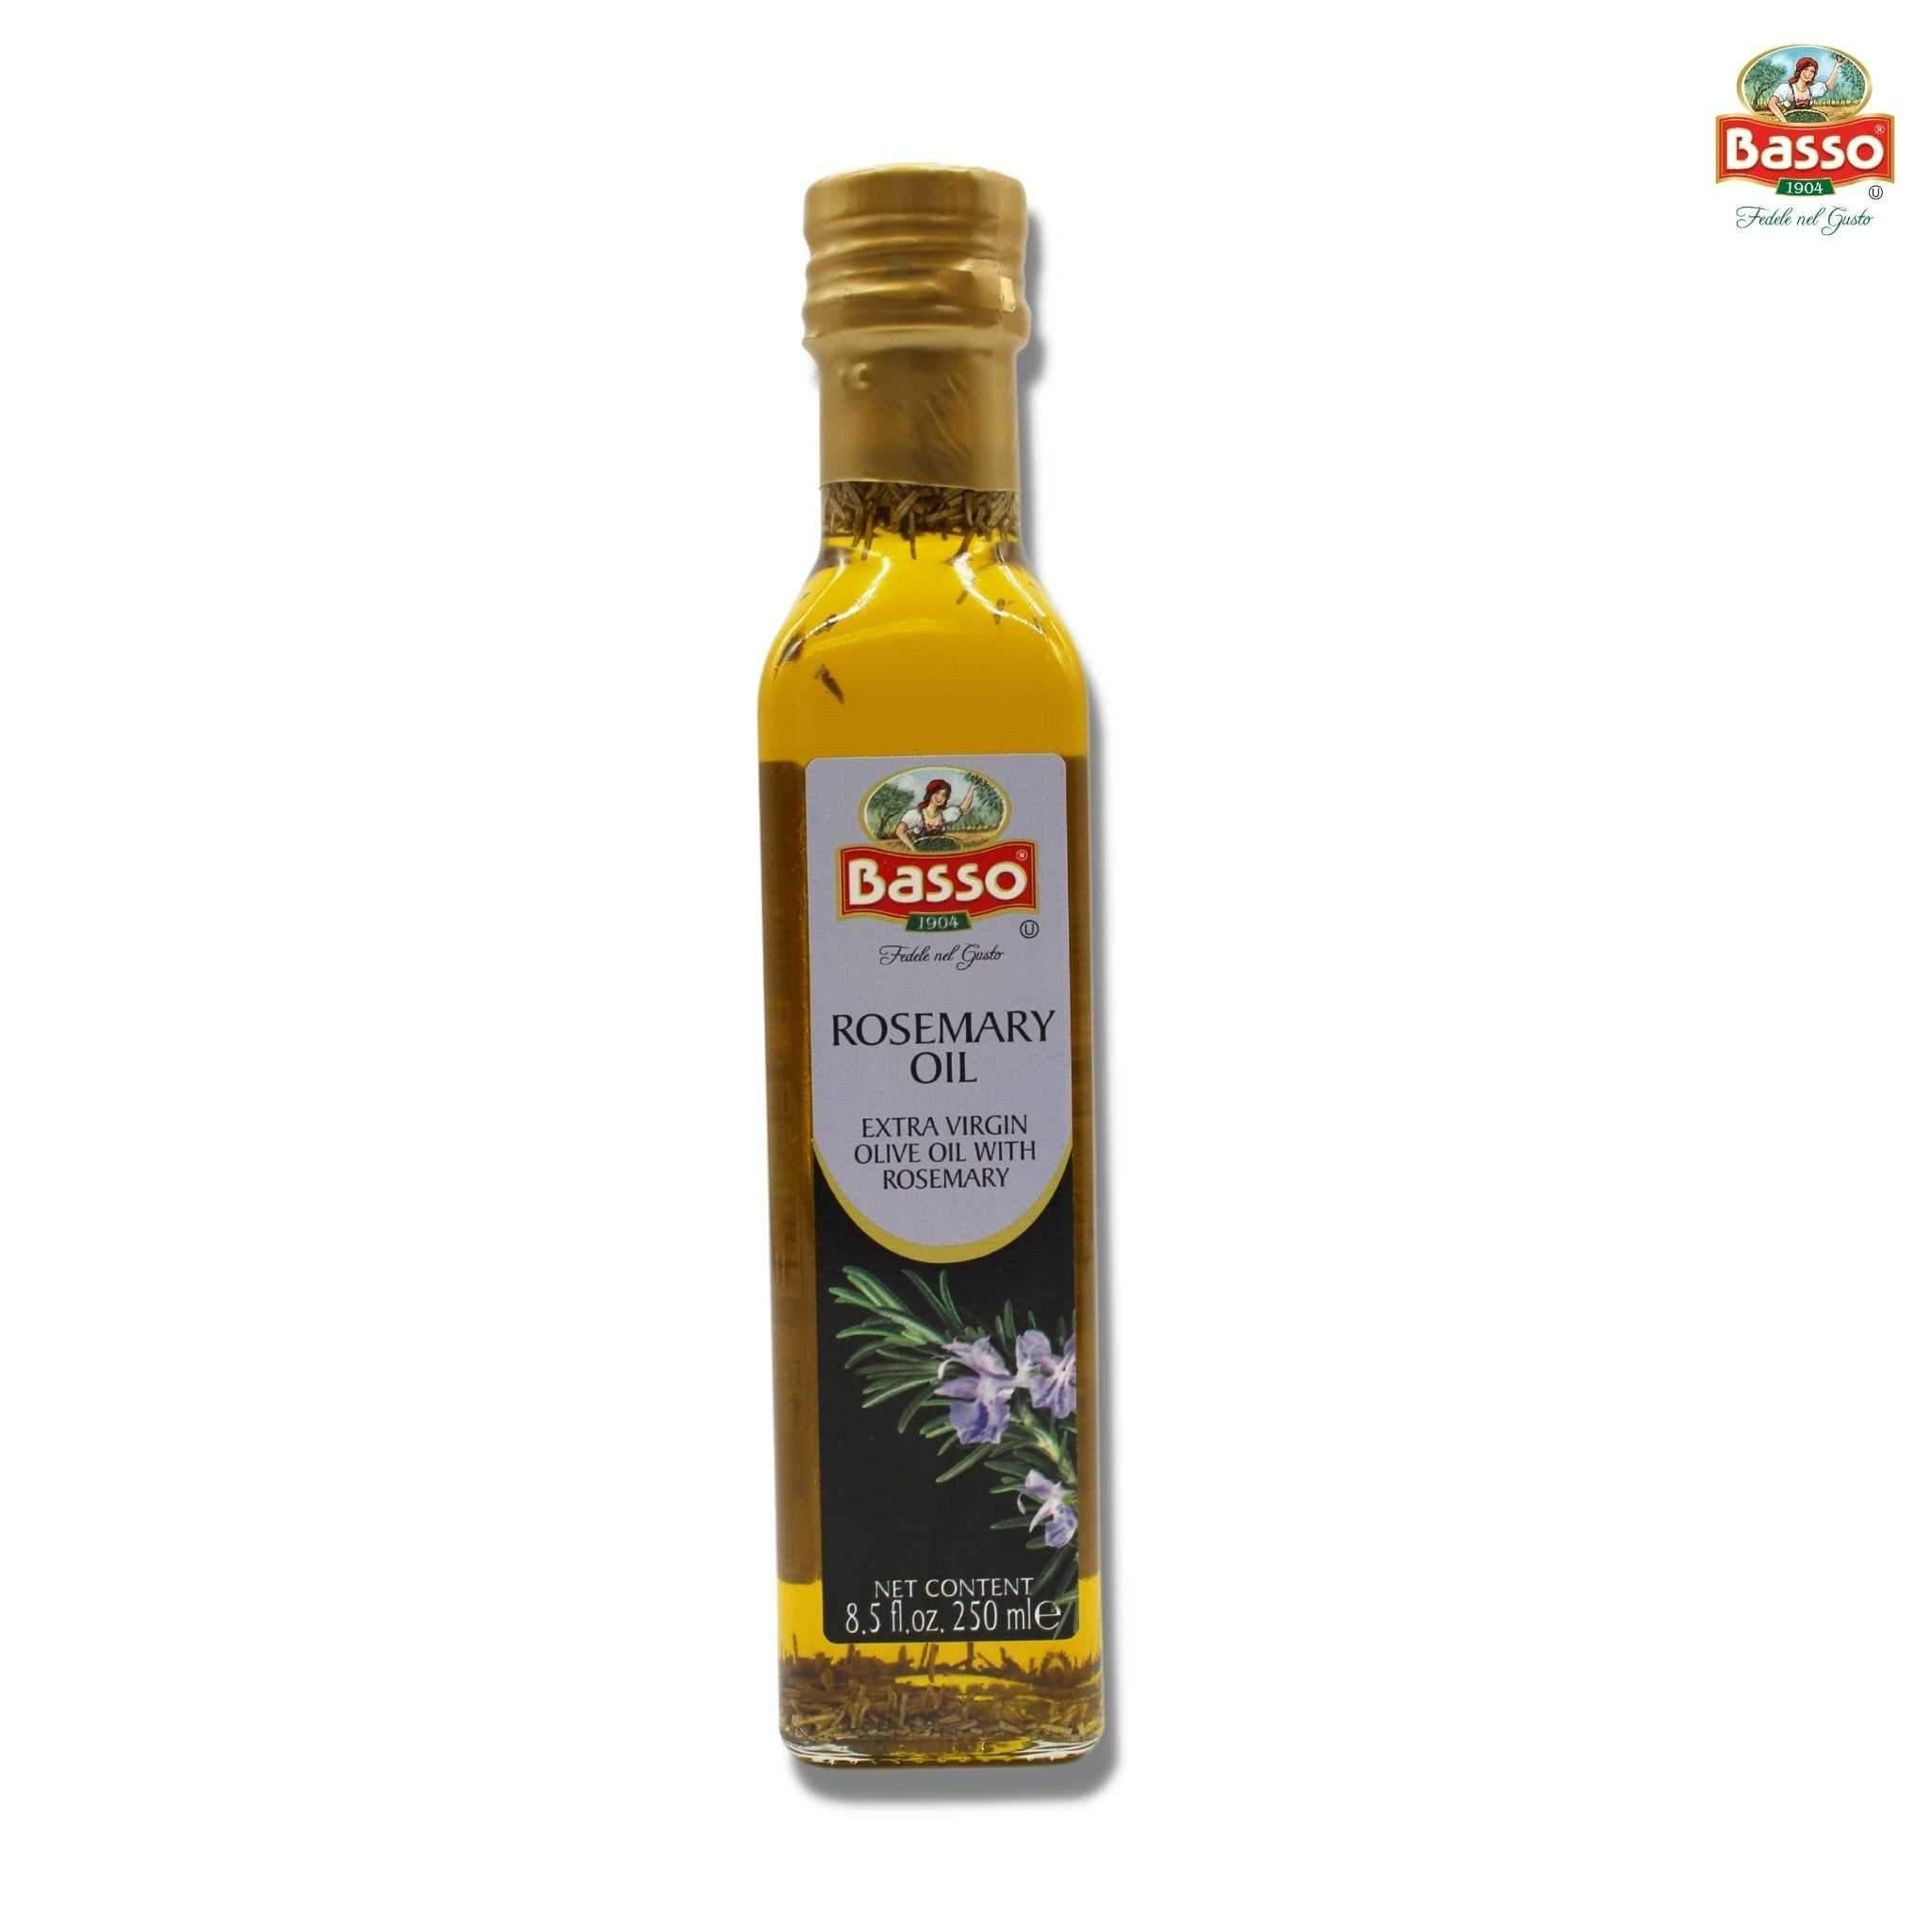 Basso Extra Virgin Olive Oil Rosemary 8.5 fl oz